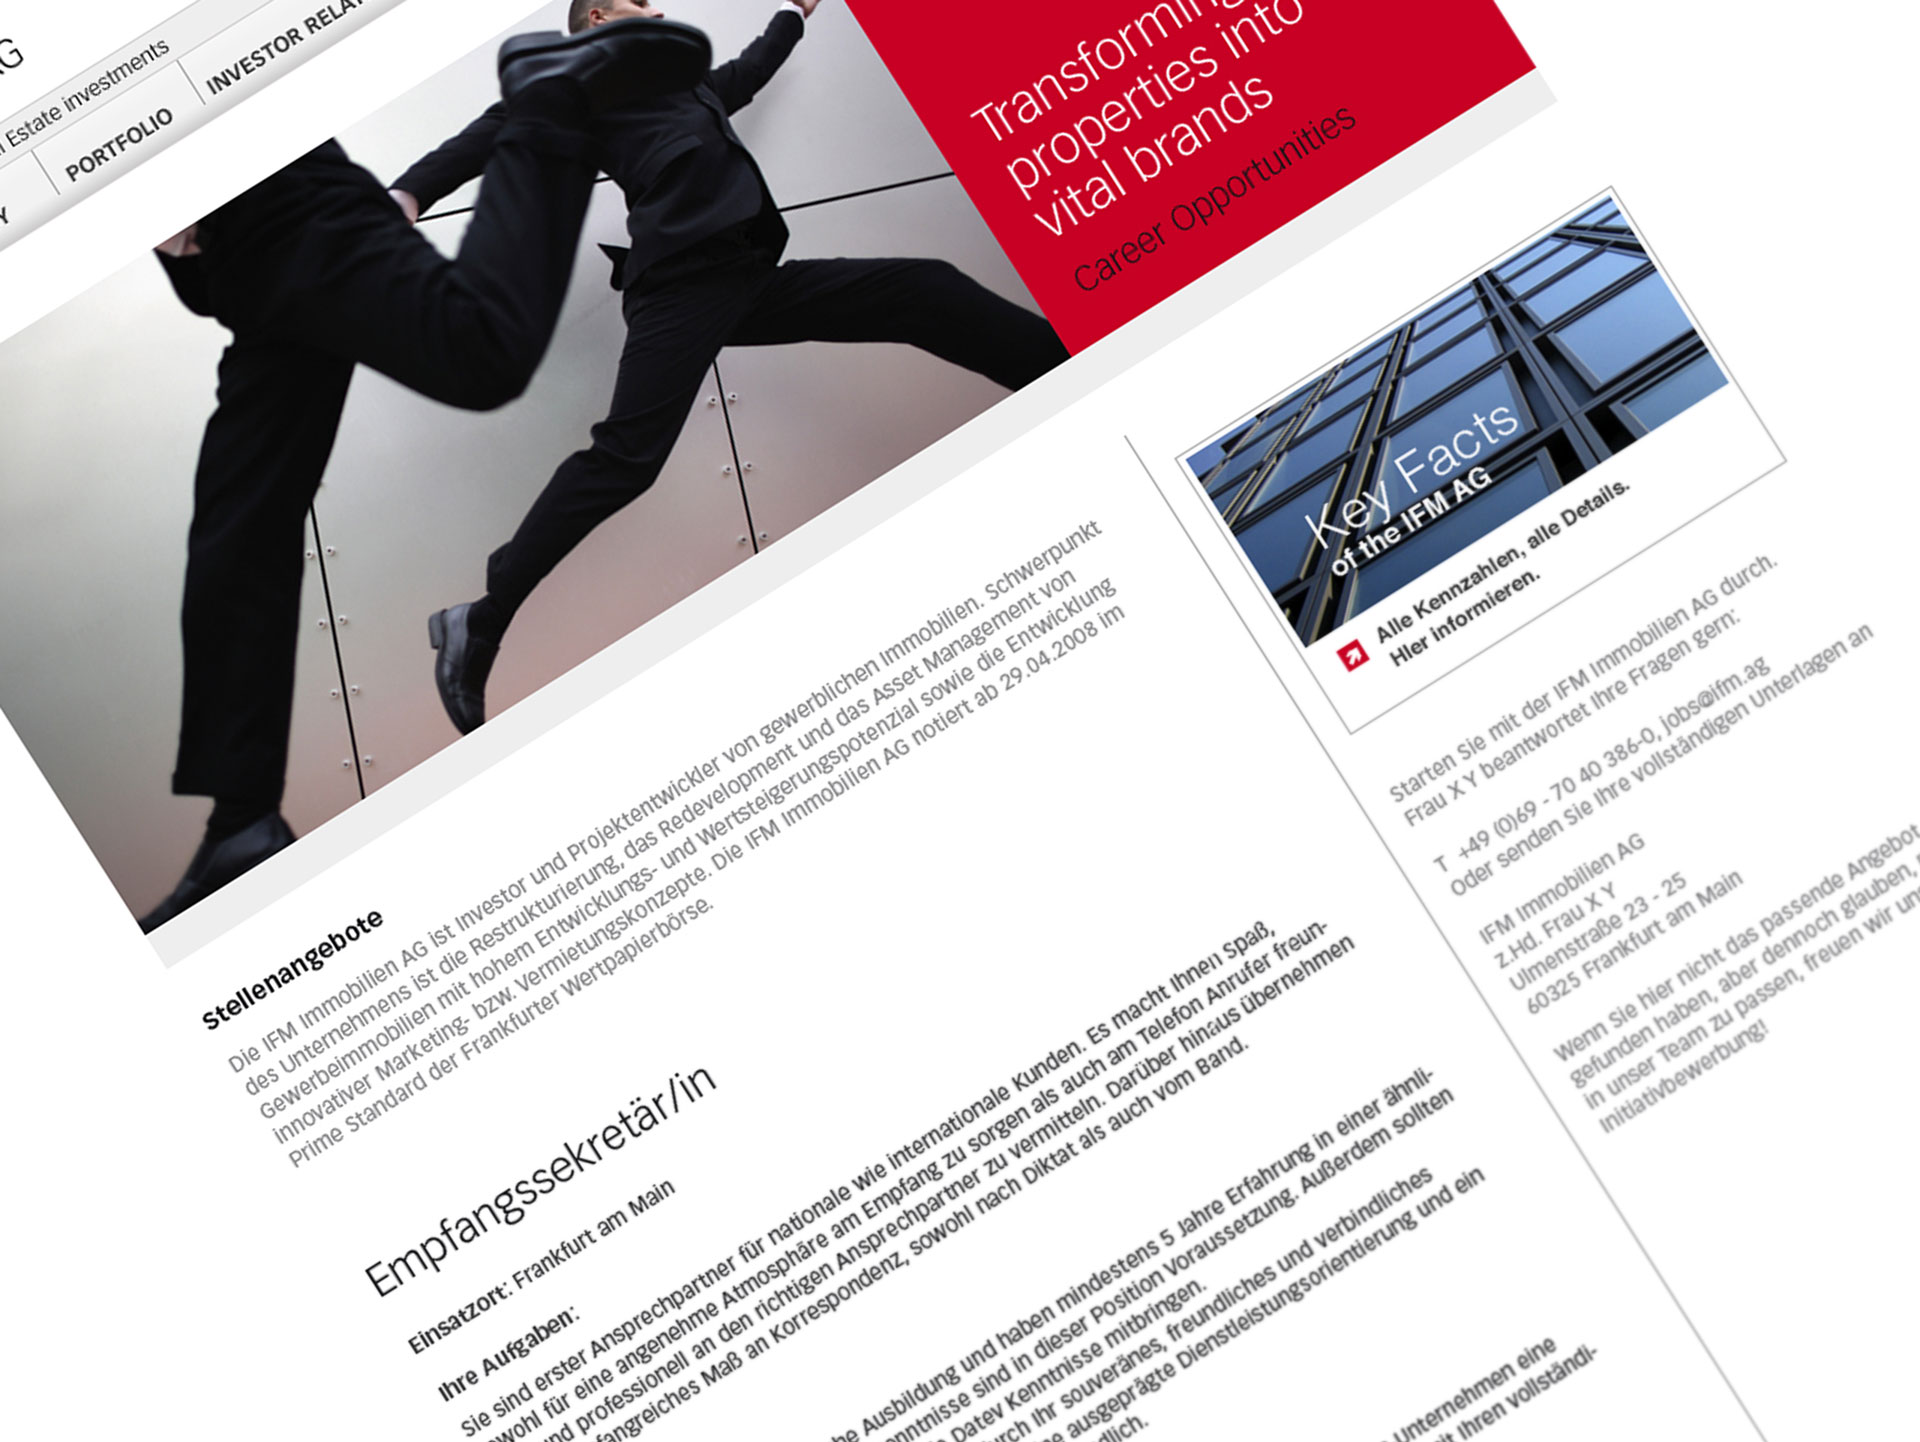 IFM Immobilien AG